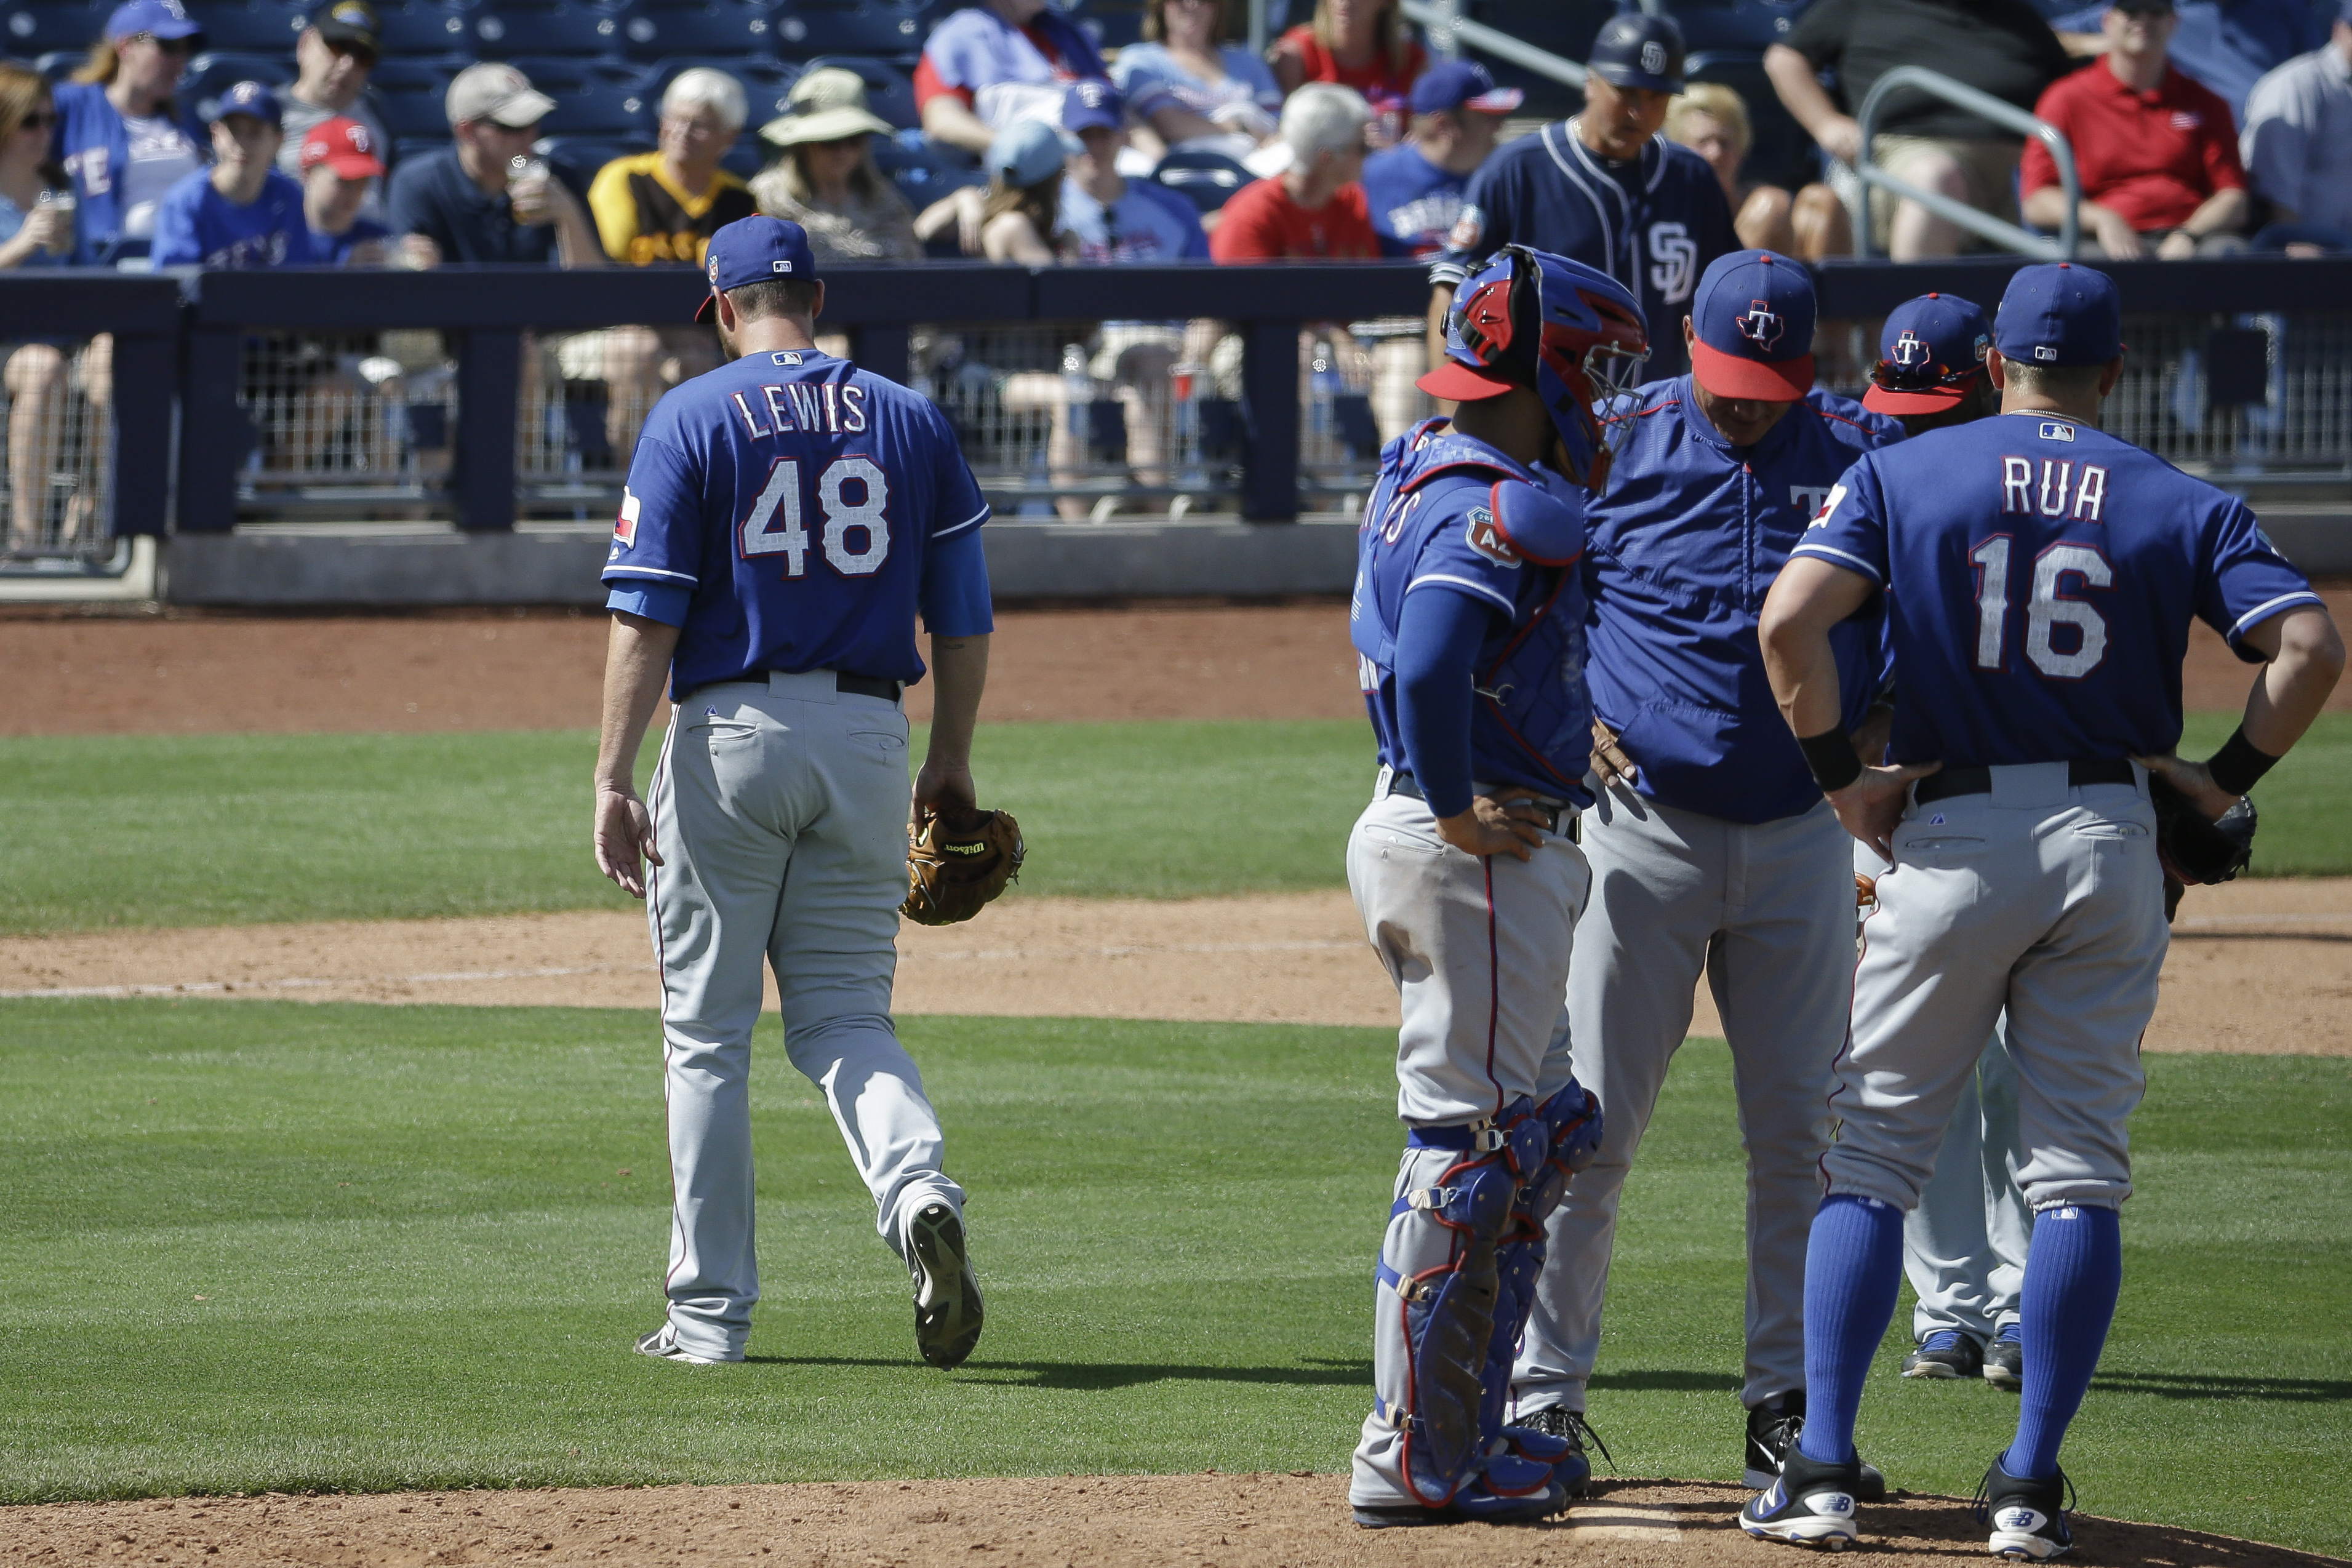 Texas Rangers starting pitcher Colby Lewis (48) is relieved in the fifth inning of a spring training baseball game against the San Diego Padres, Tuesday, March 22, 2016, in Peoria, Ariz. (AP Photo/Darron Cummings)